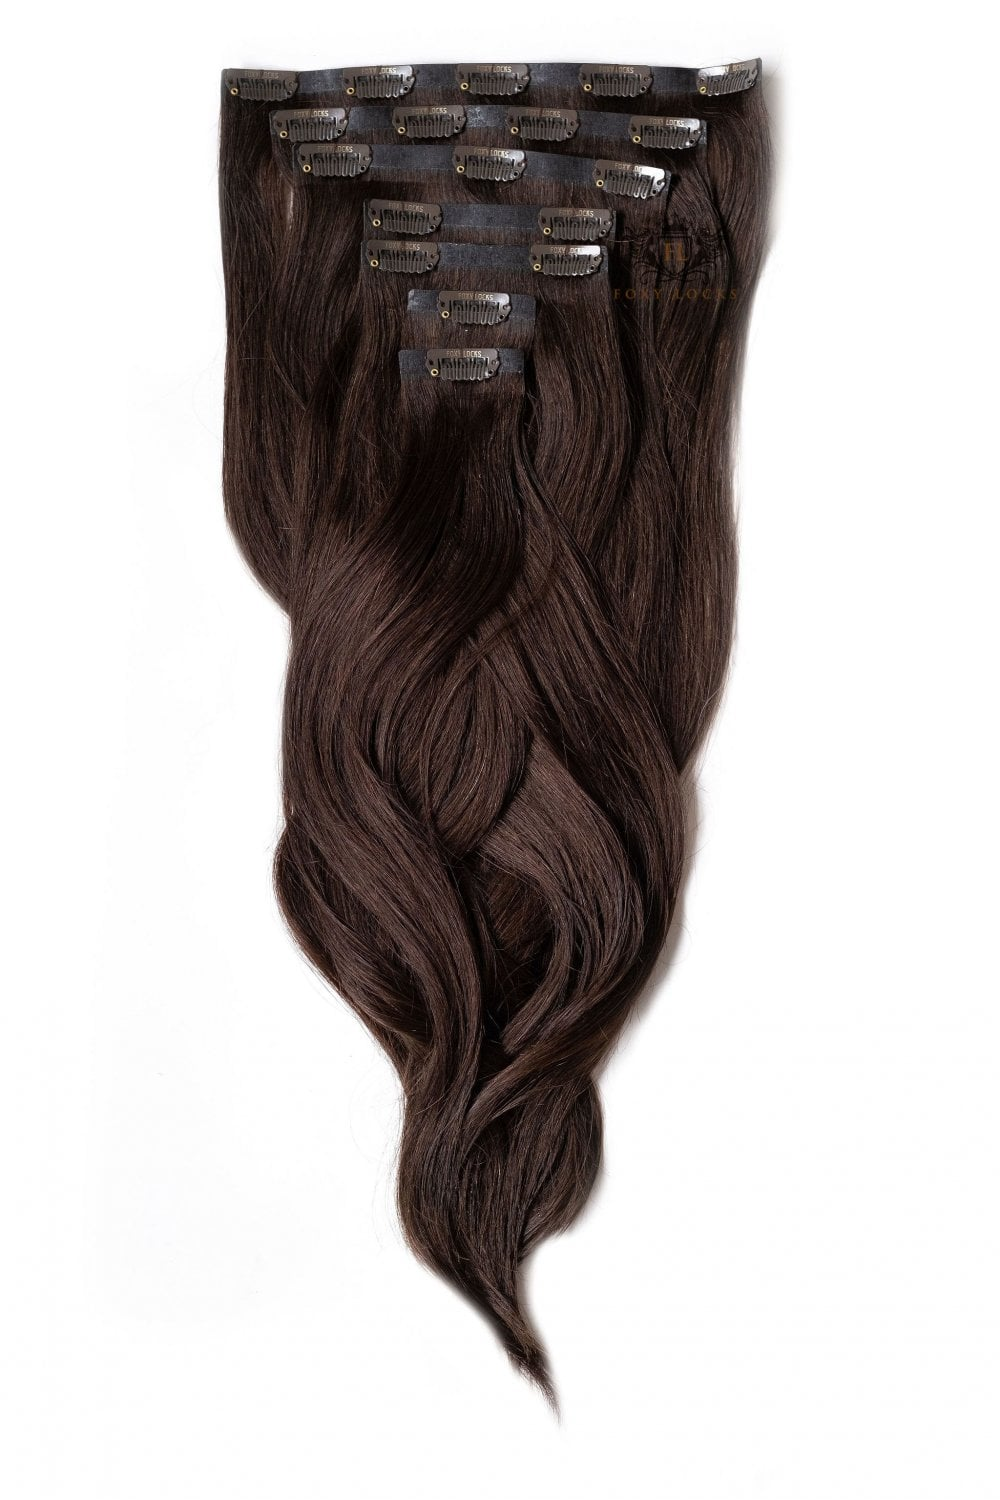 Cocoa Regular Seamless Clip In Human Hair Extensions 125g